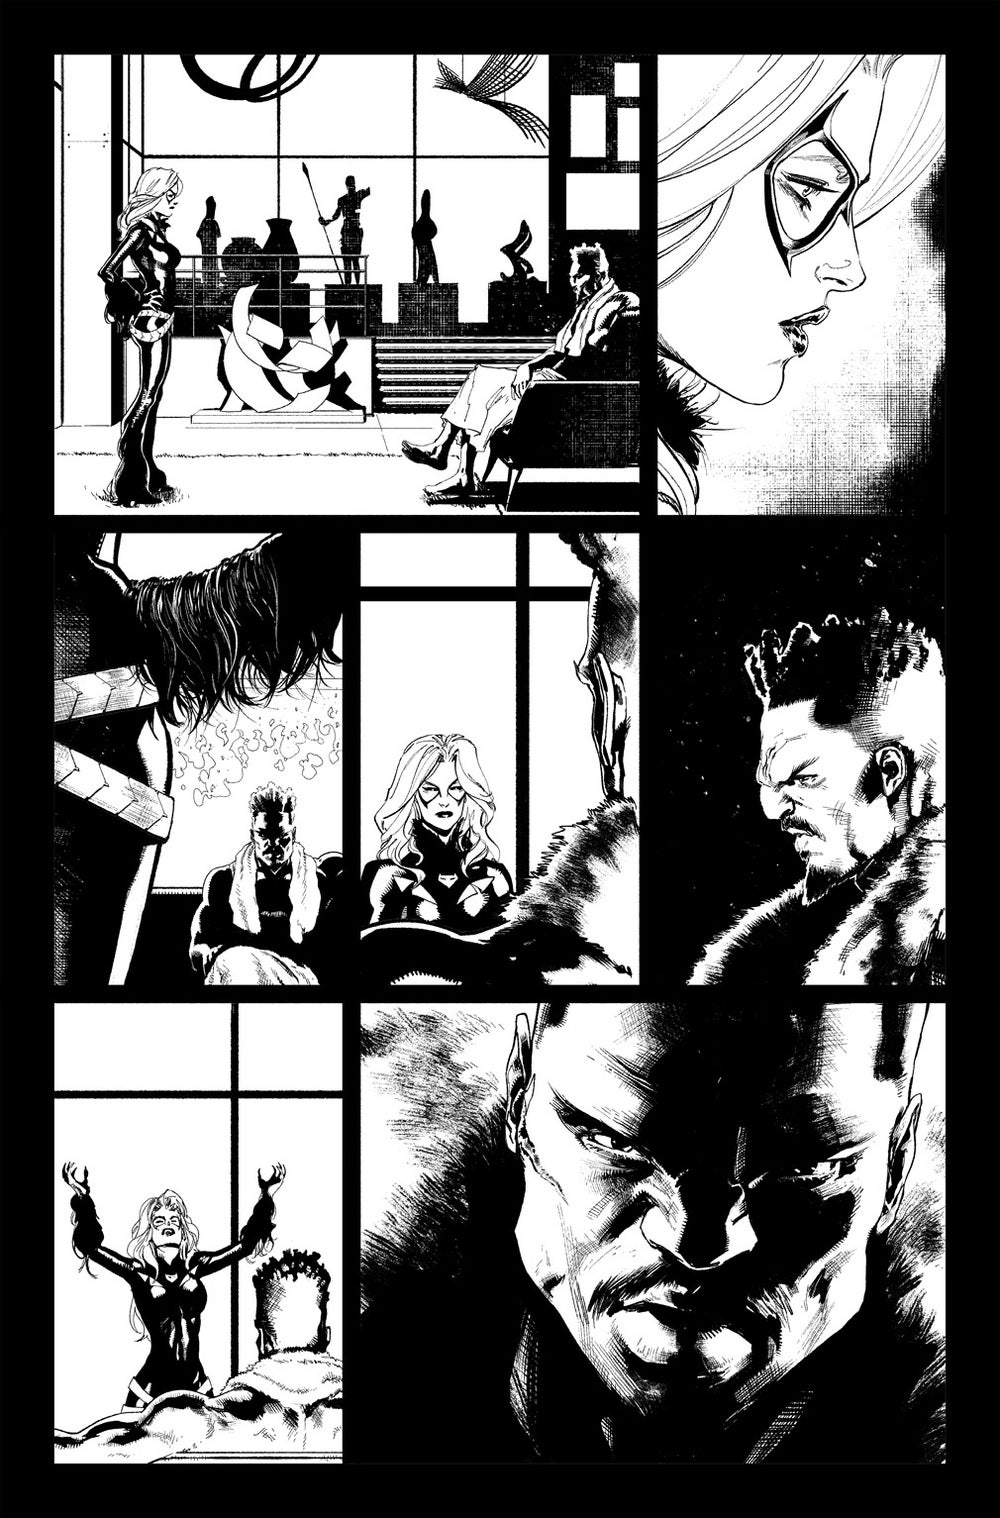 Image of DEFENDERS #5 p.19 ARTIST'S PROOF